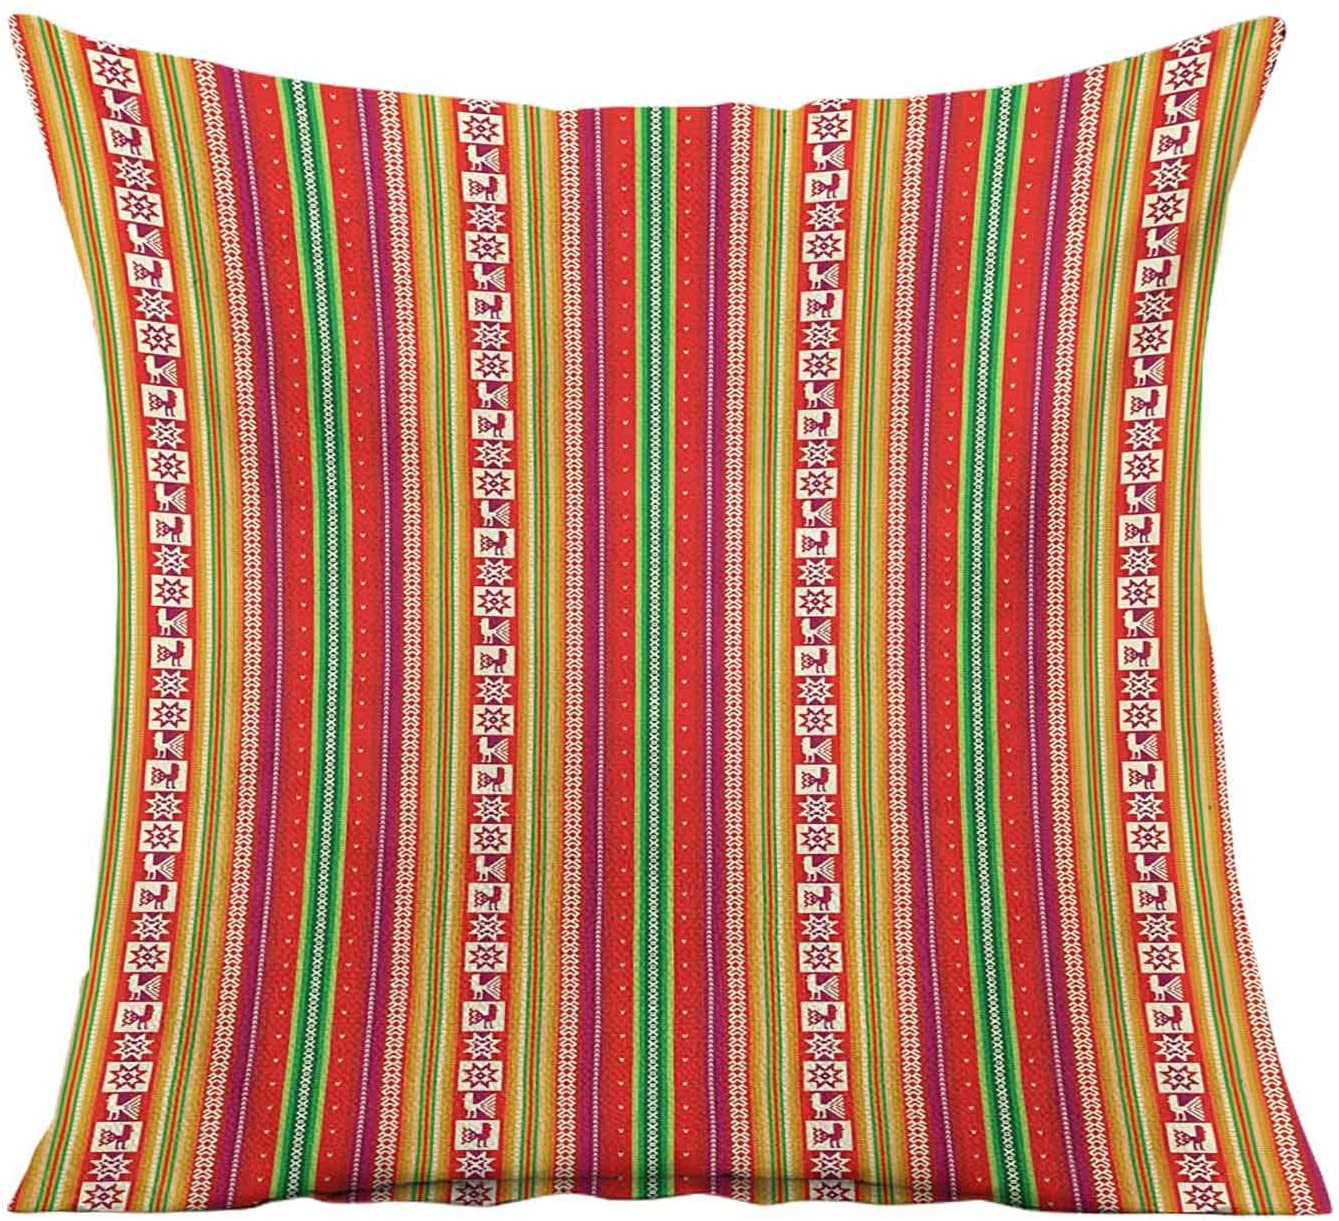 Native American Throw Pillow Cushion Cover,South American Colorful Pattern with Birds Bolivian Traditional Borders Pillowcase Decorative for Patio Couch Sofa Home Car Couch,16x16 Inches,Multicolor